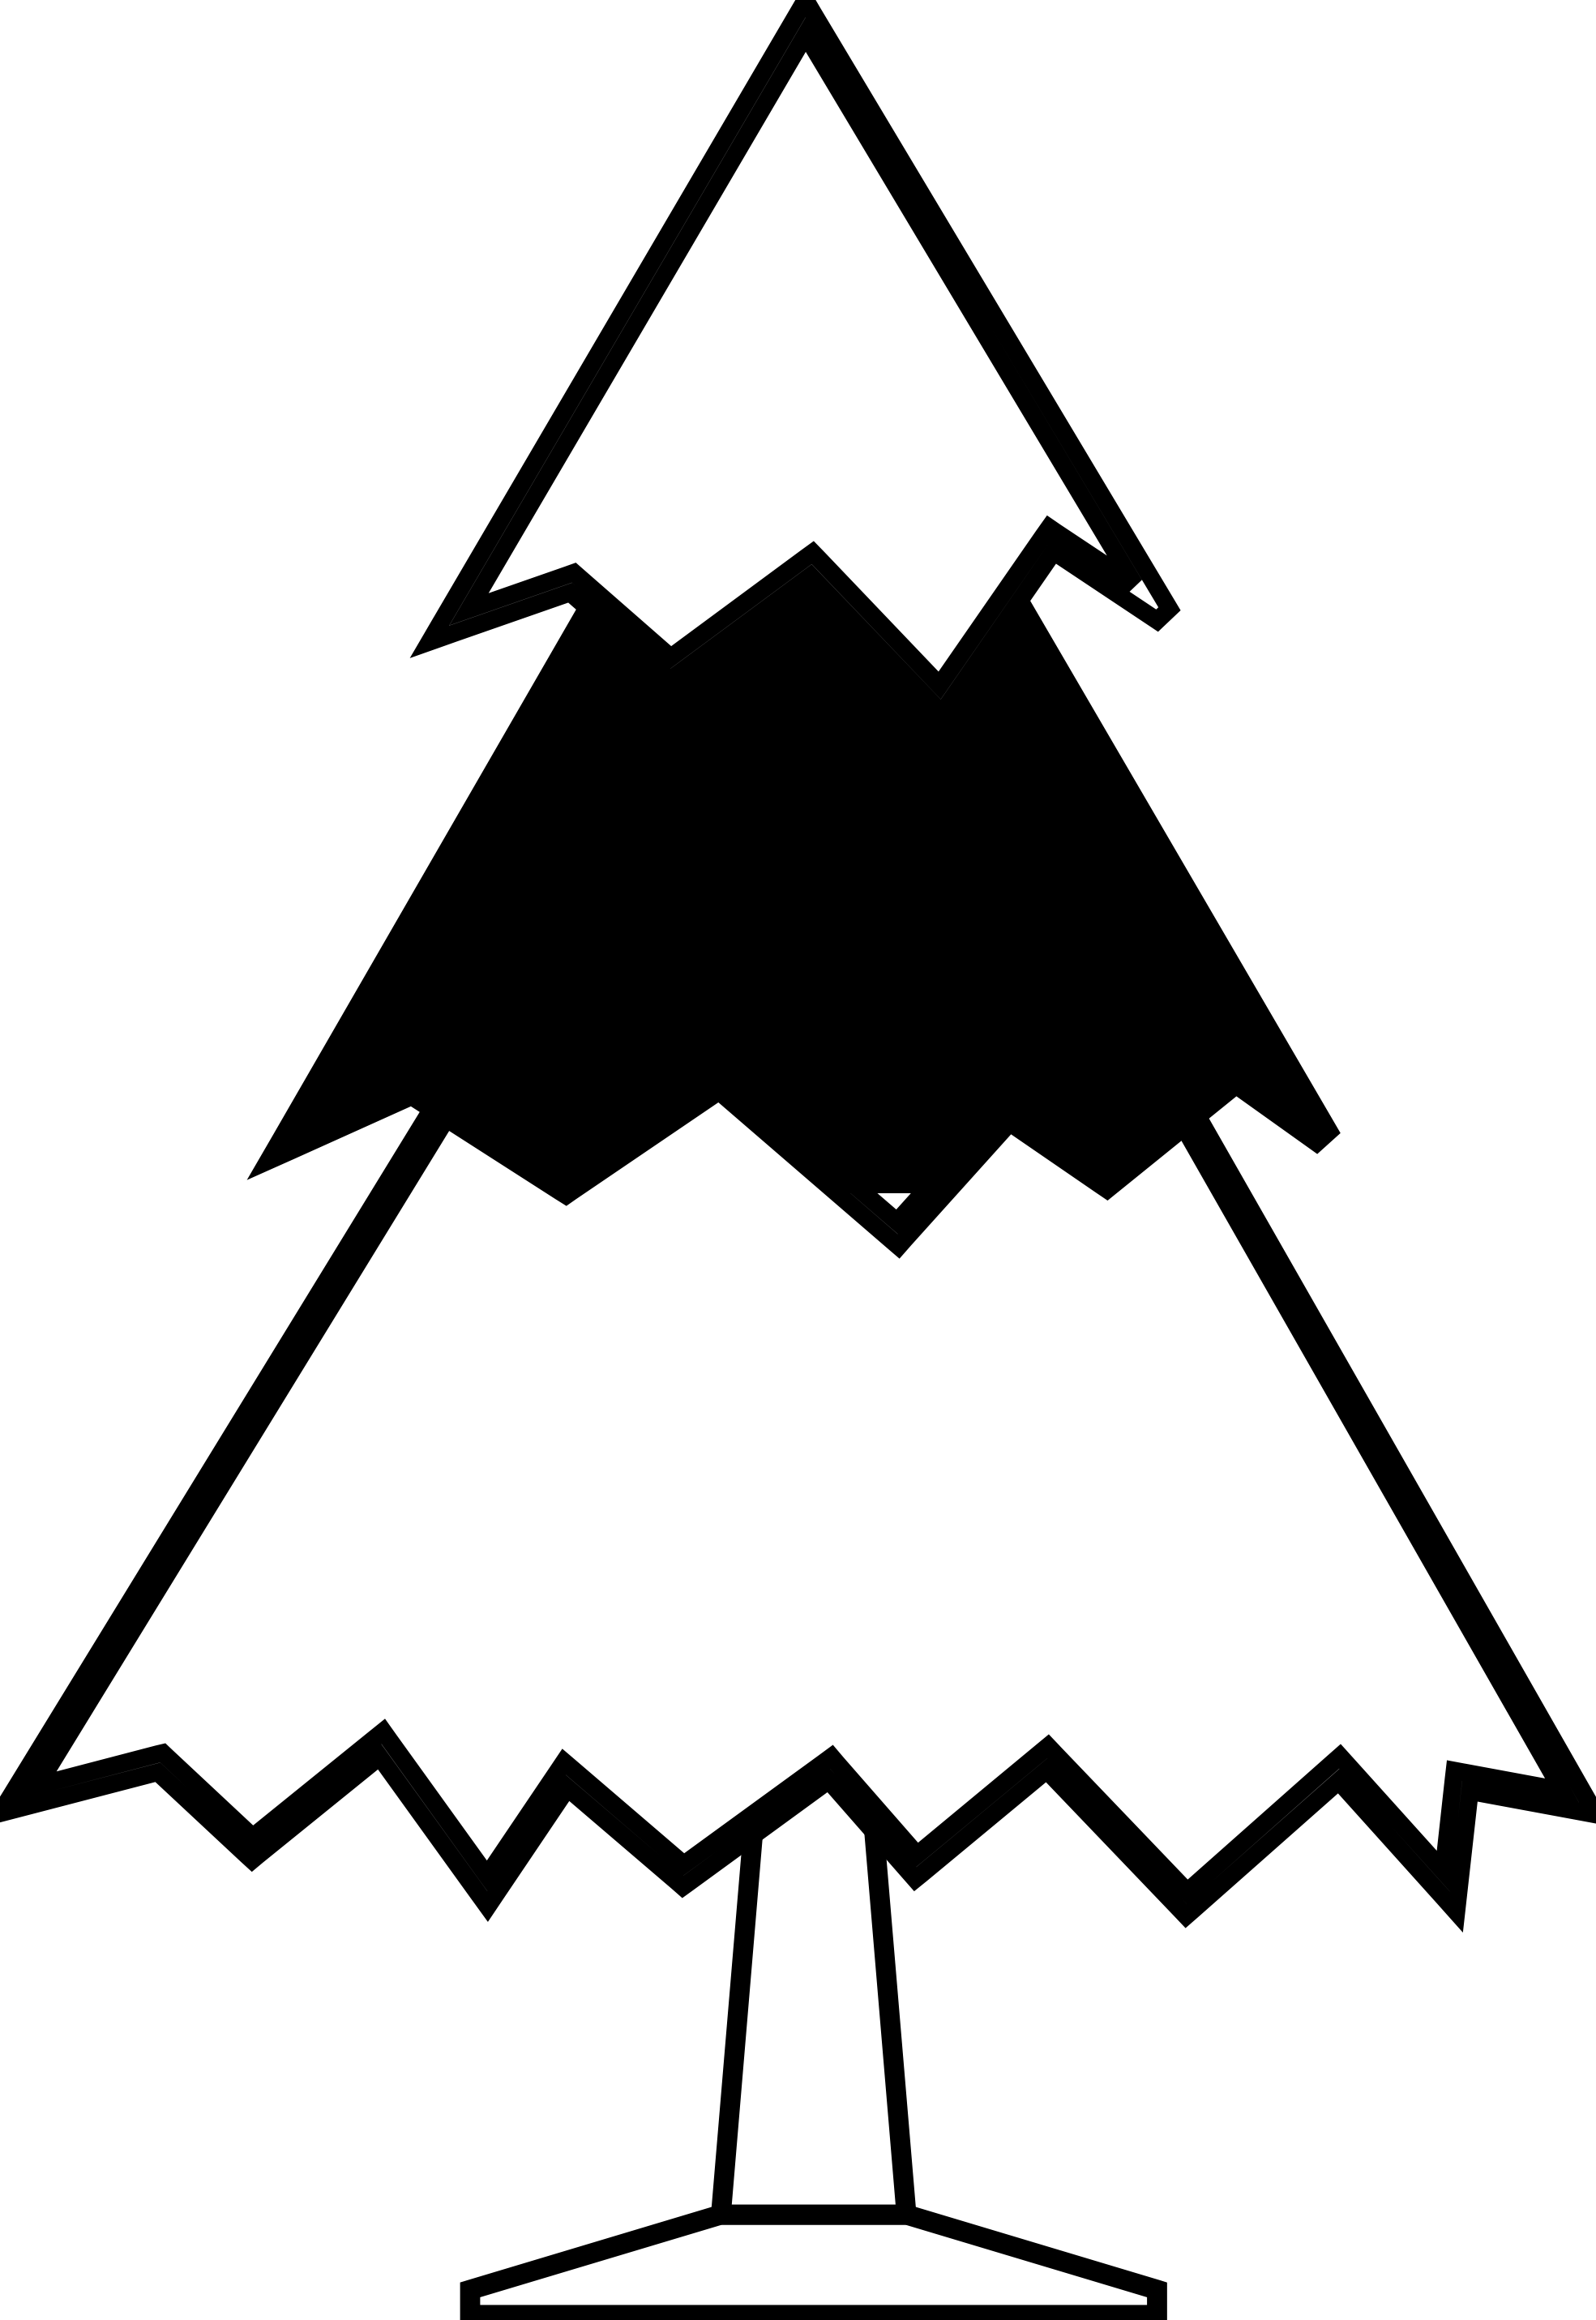 Black And White Christmas Tree Clipart | Free download best Black ...